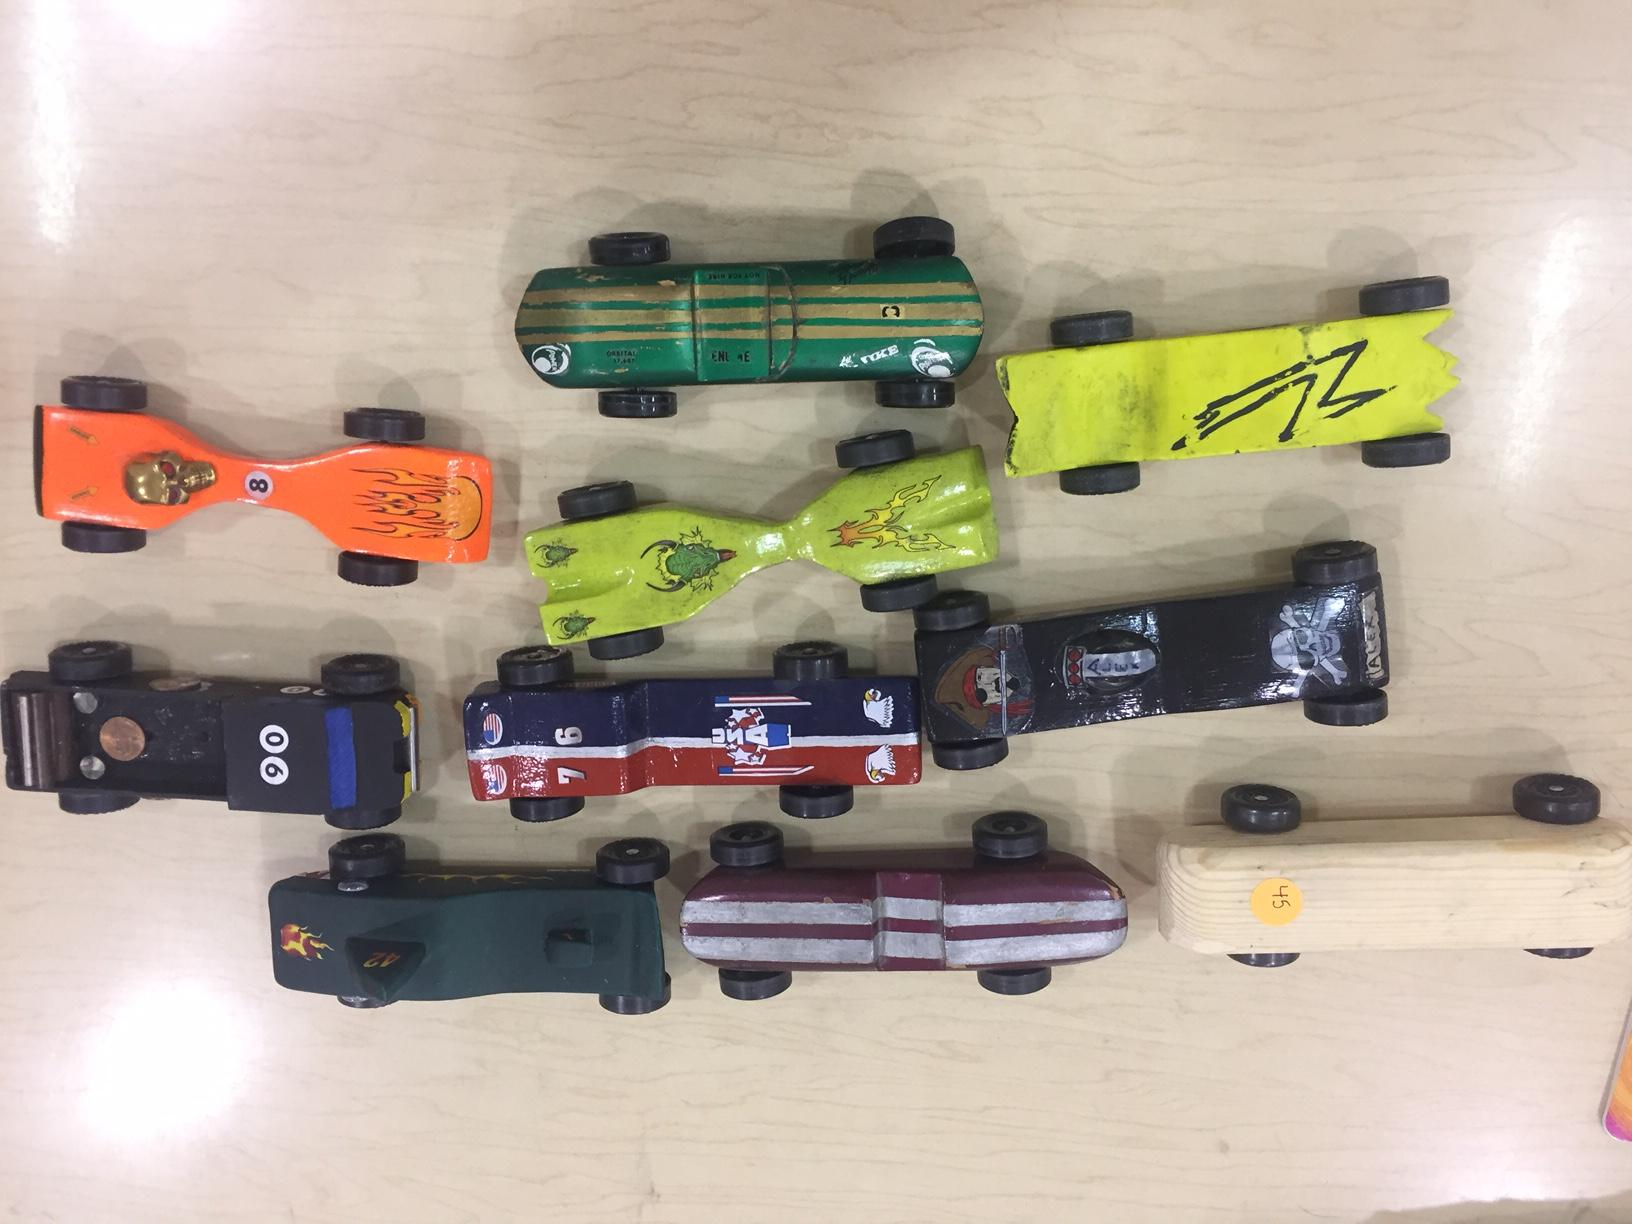 FOX 11's Lauren Kalil was live with some of the Cub Scouts involved in the project giving us a preview of what the event will be like. Participants of the event will get to decorate a partially assembled pinewood derby car and race it. (April 21, 2017/WLUK)